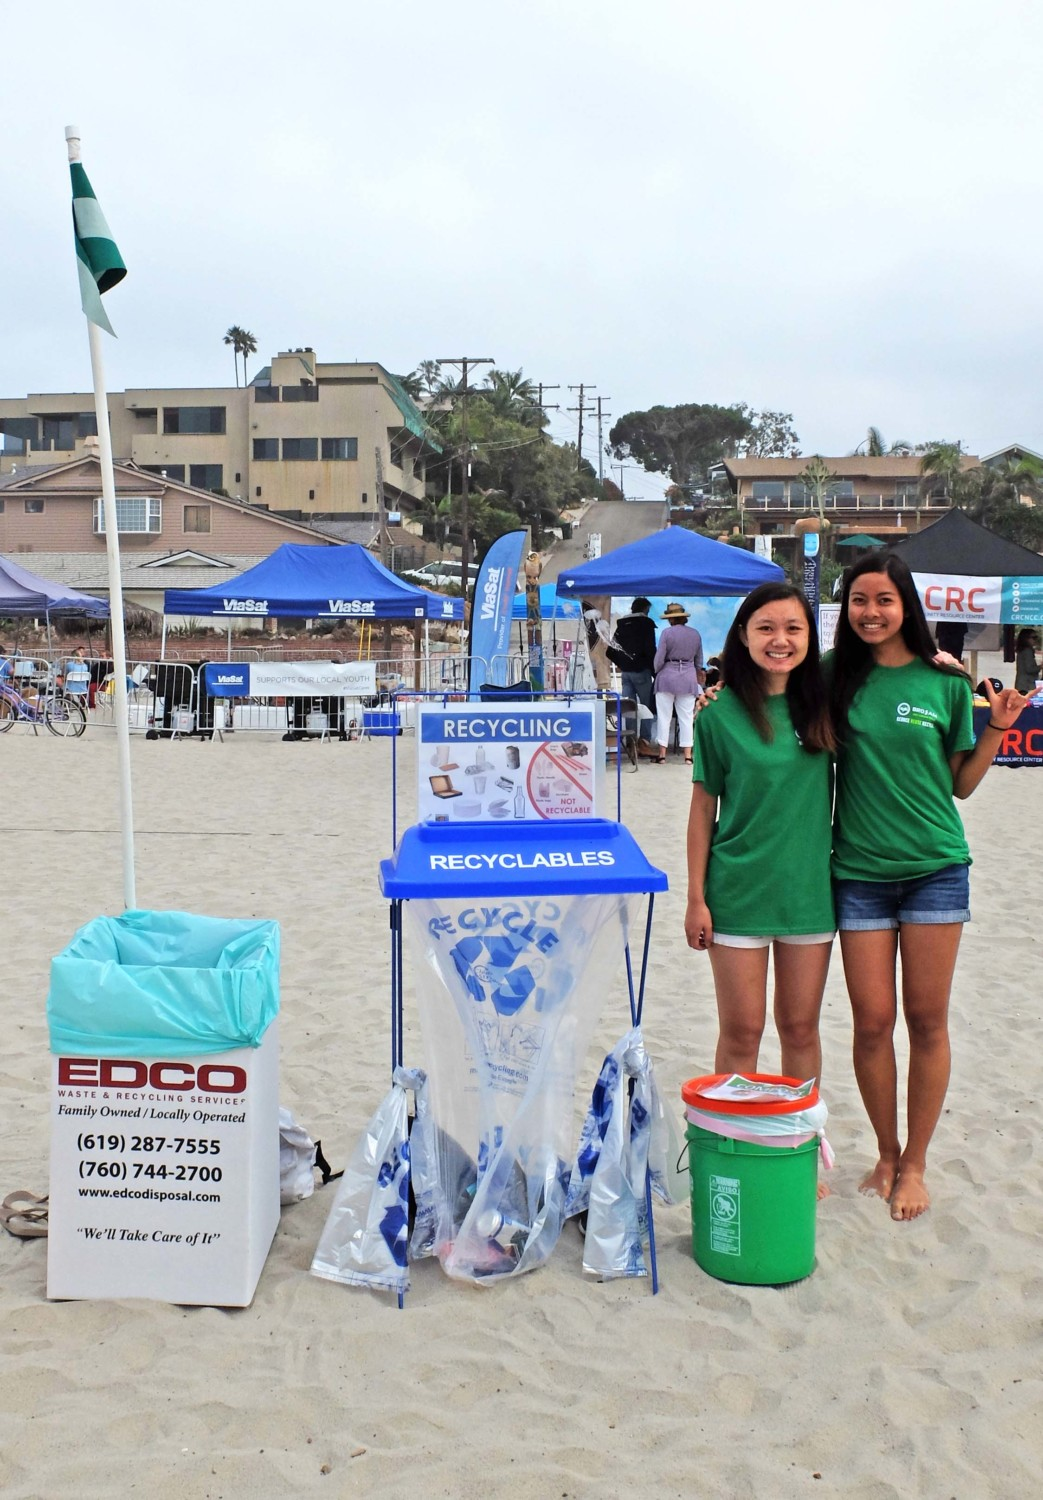 Waste declines, landfill diversion rises at city events